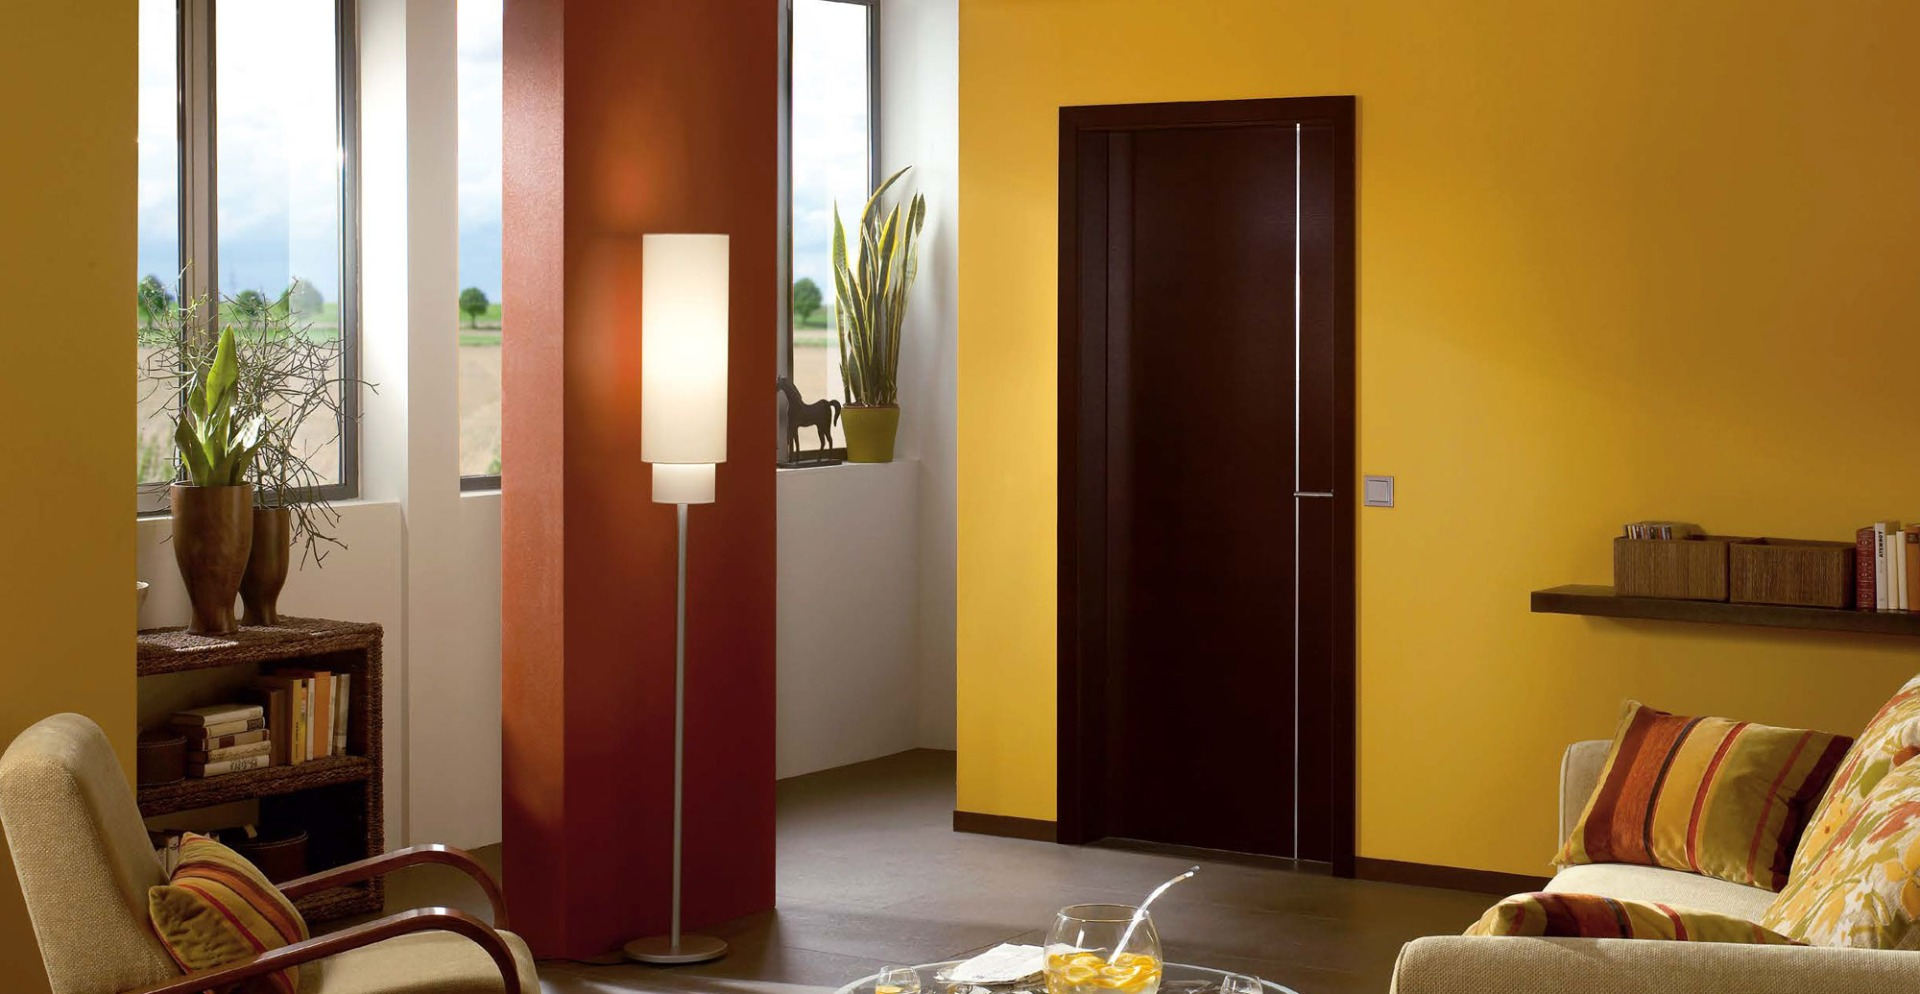 Solid Oak Doors  - Dark Oak with Chocolate Veneer Finish  - Solid Oak Internal